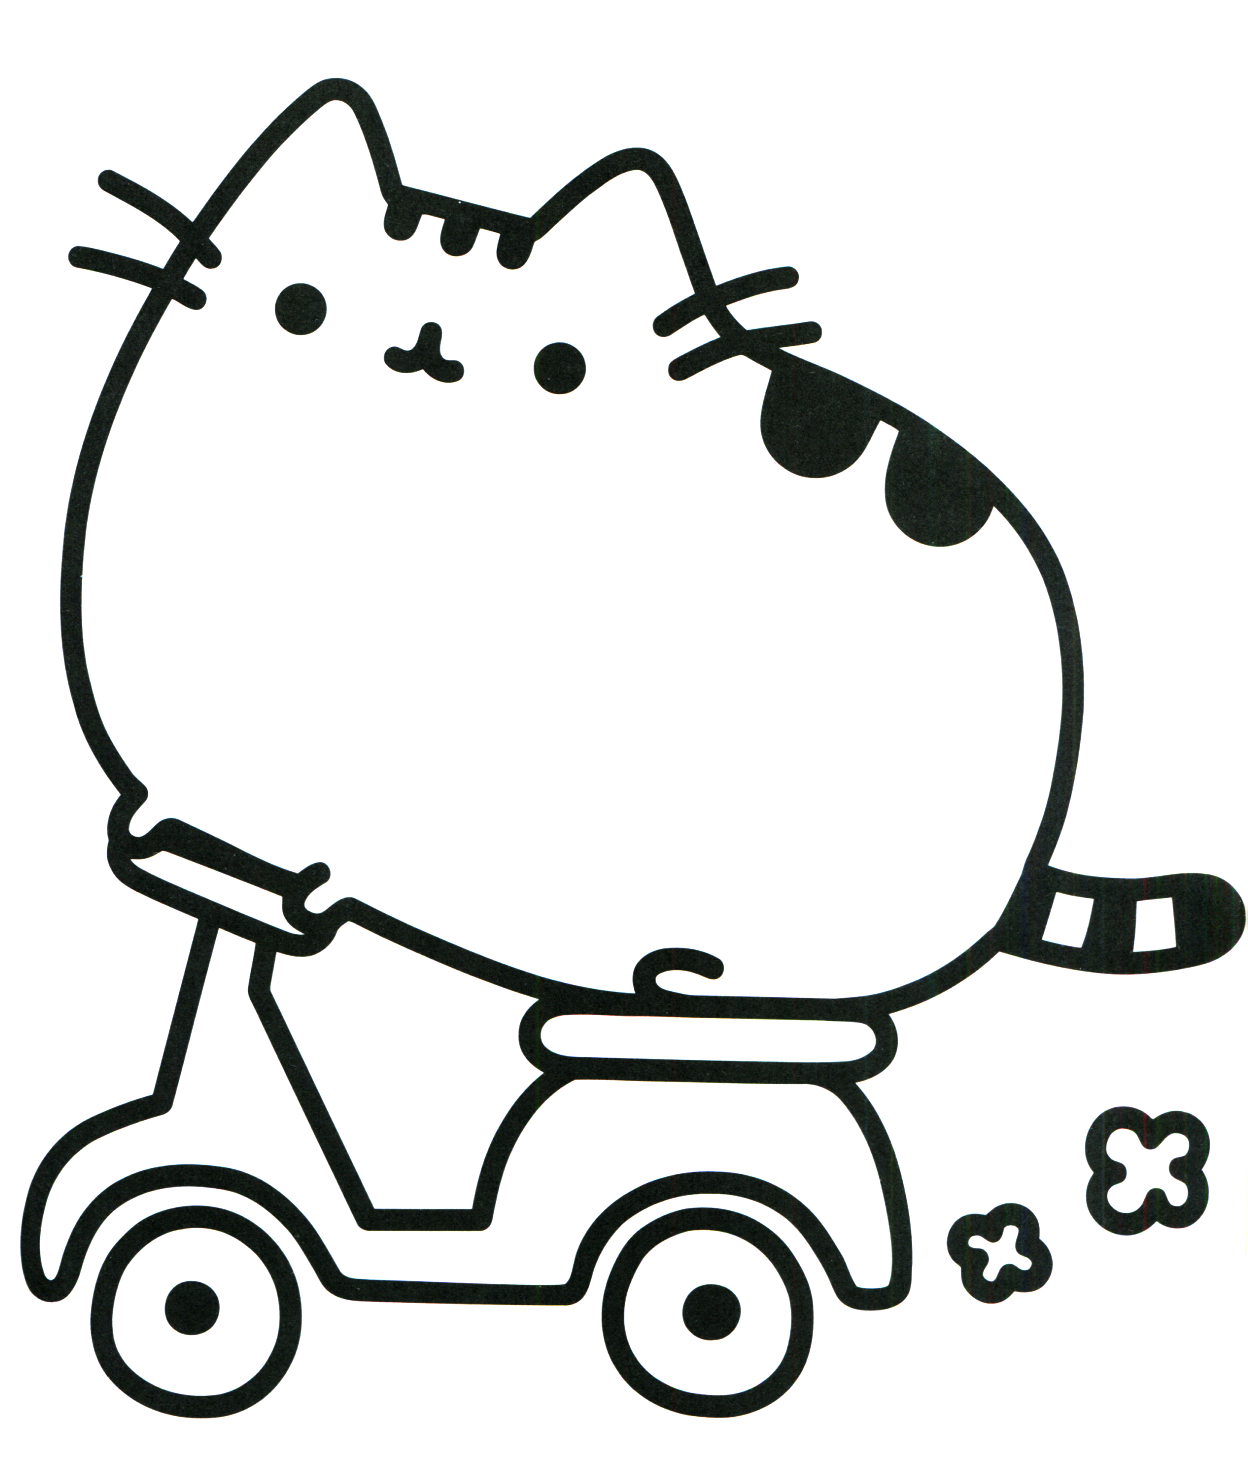 Pusheen Coloring Pages Cat On A Motorbike Cat Coloring Book Cat Coloring Page Pusheen Coloring Pages